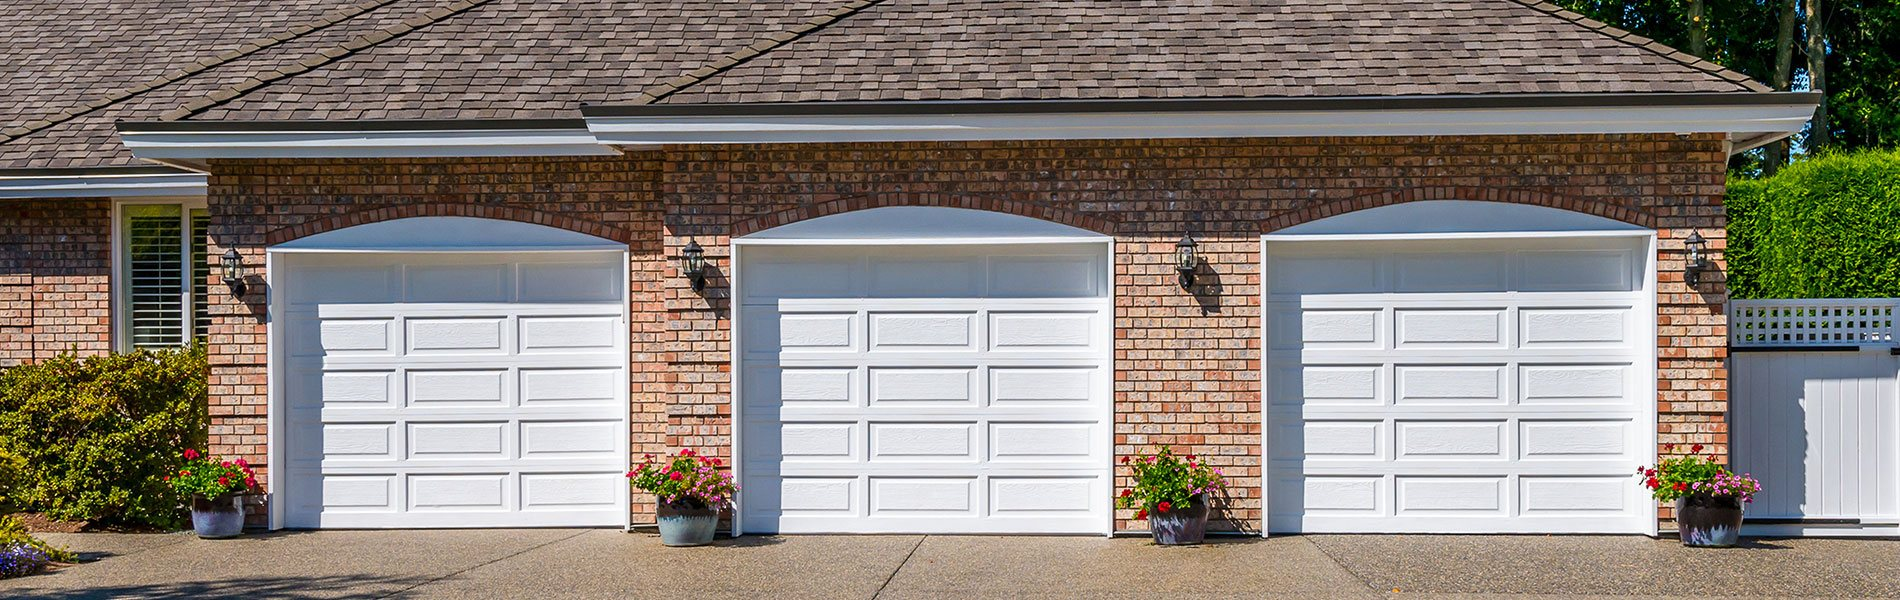 Galaxy Garage Door Service, Troutdale, OR 503-405-4062